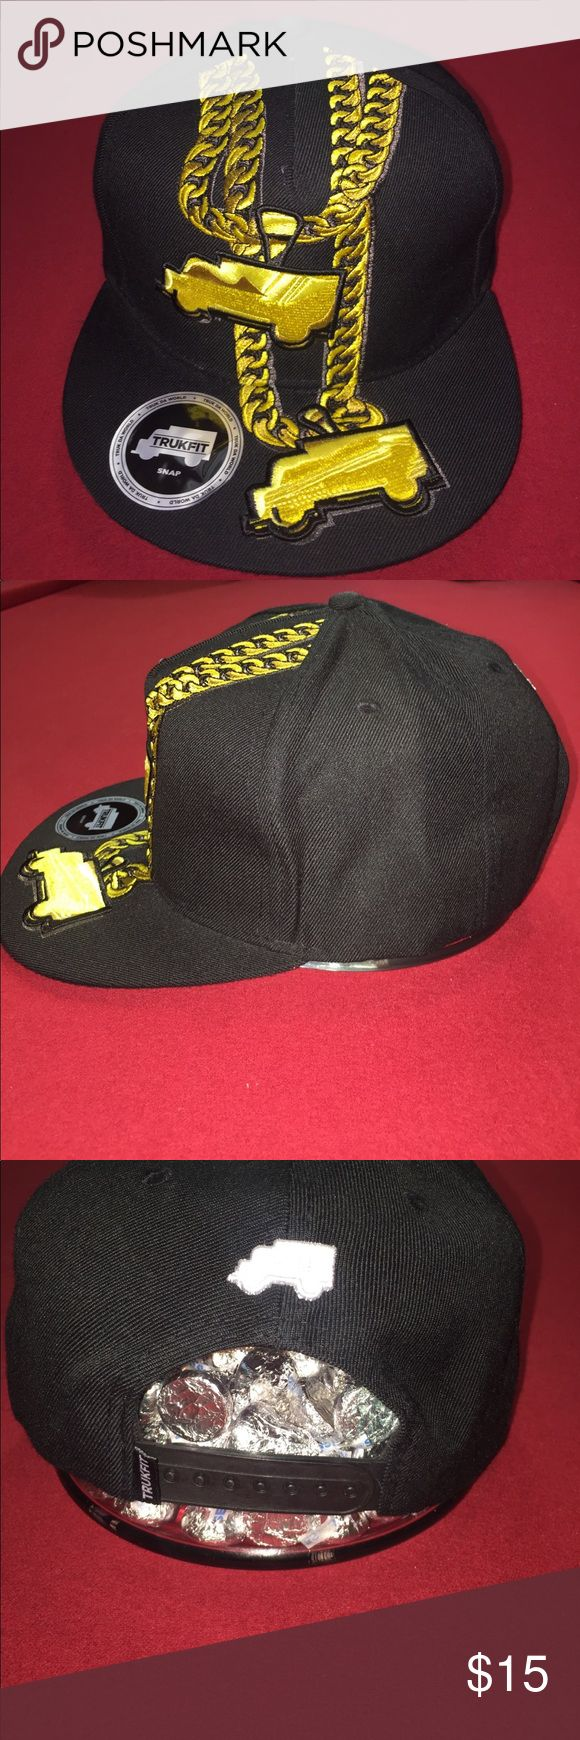 Original Trukfit SnapBack hat Brand new, black with yellow chain detail Trukfit hat. SnapBack Trukfit by Lil Wayne Accessories Hats